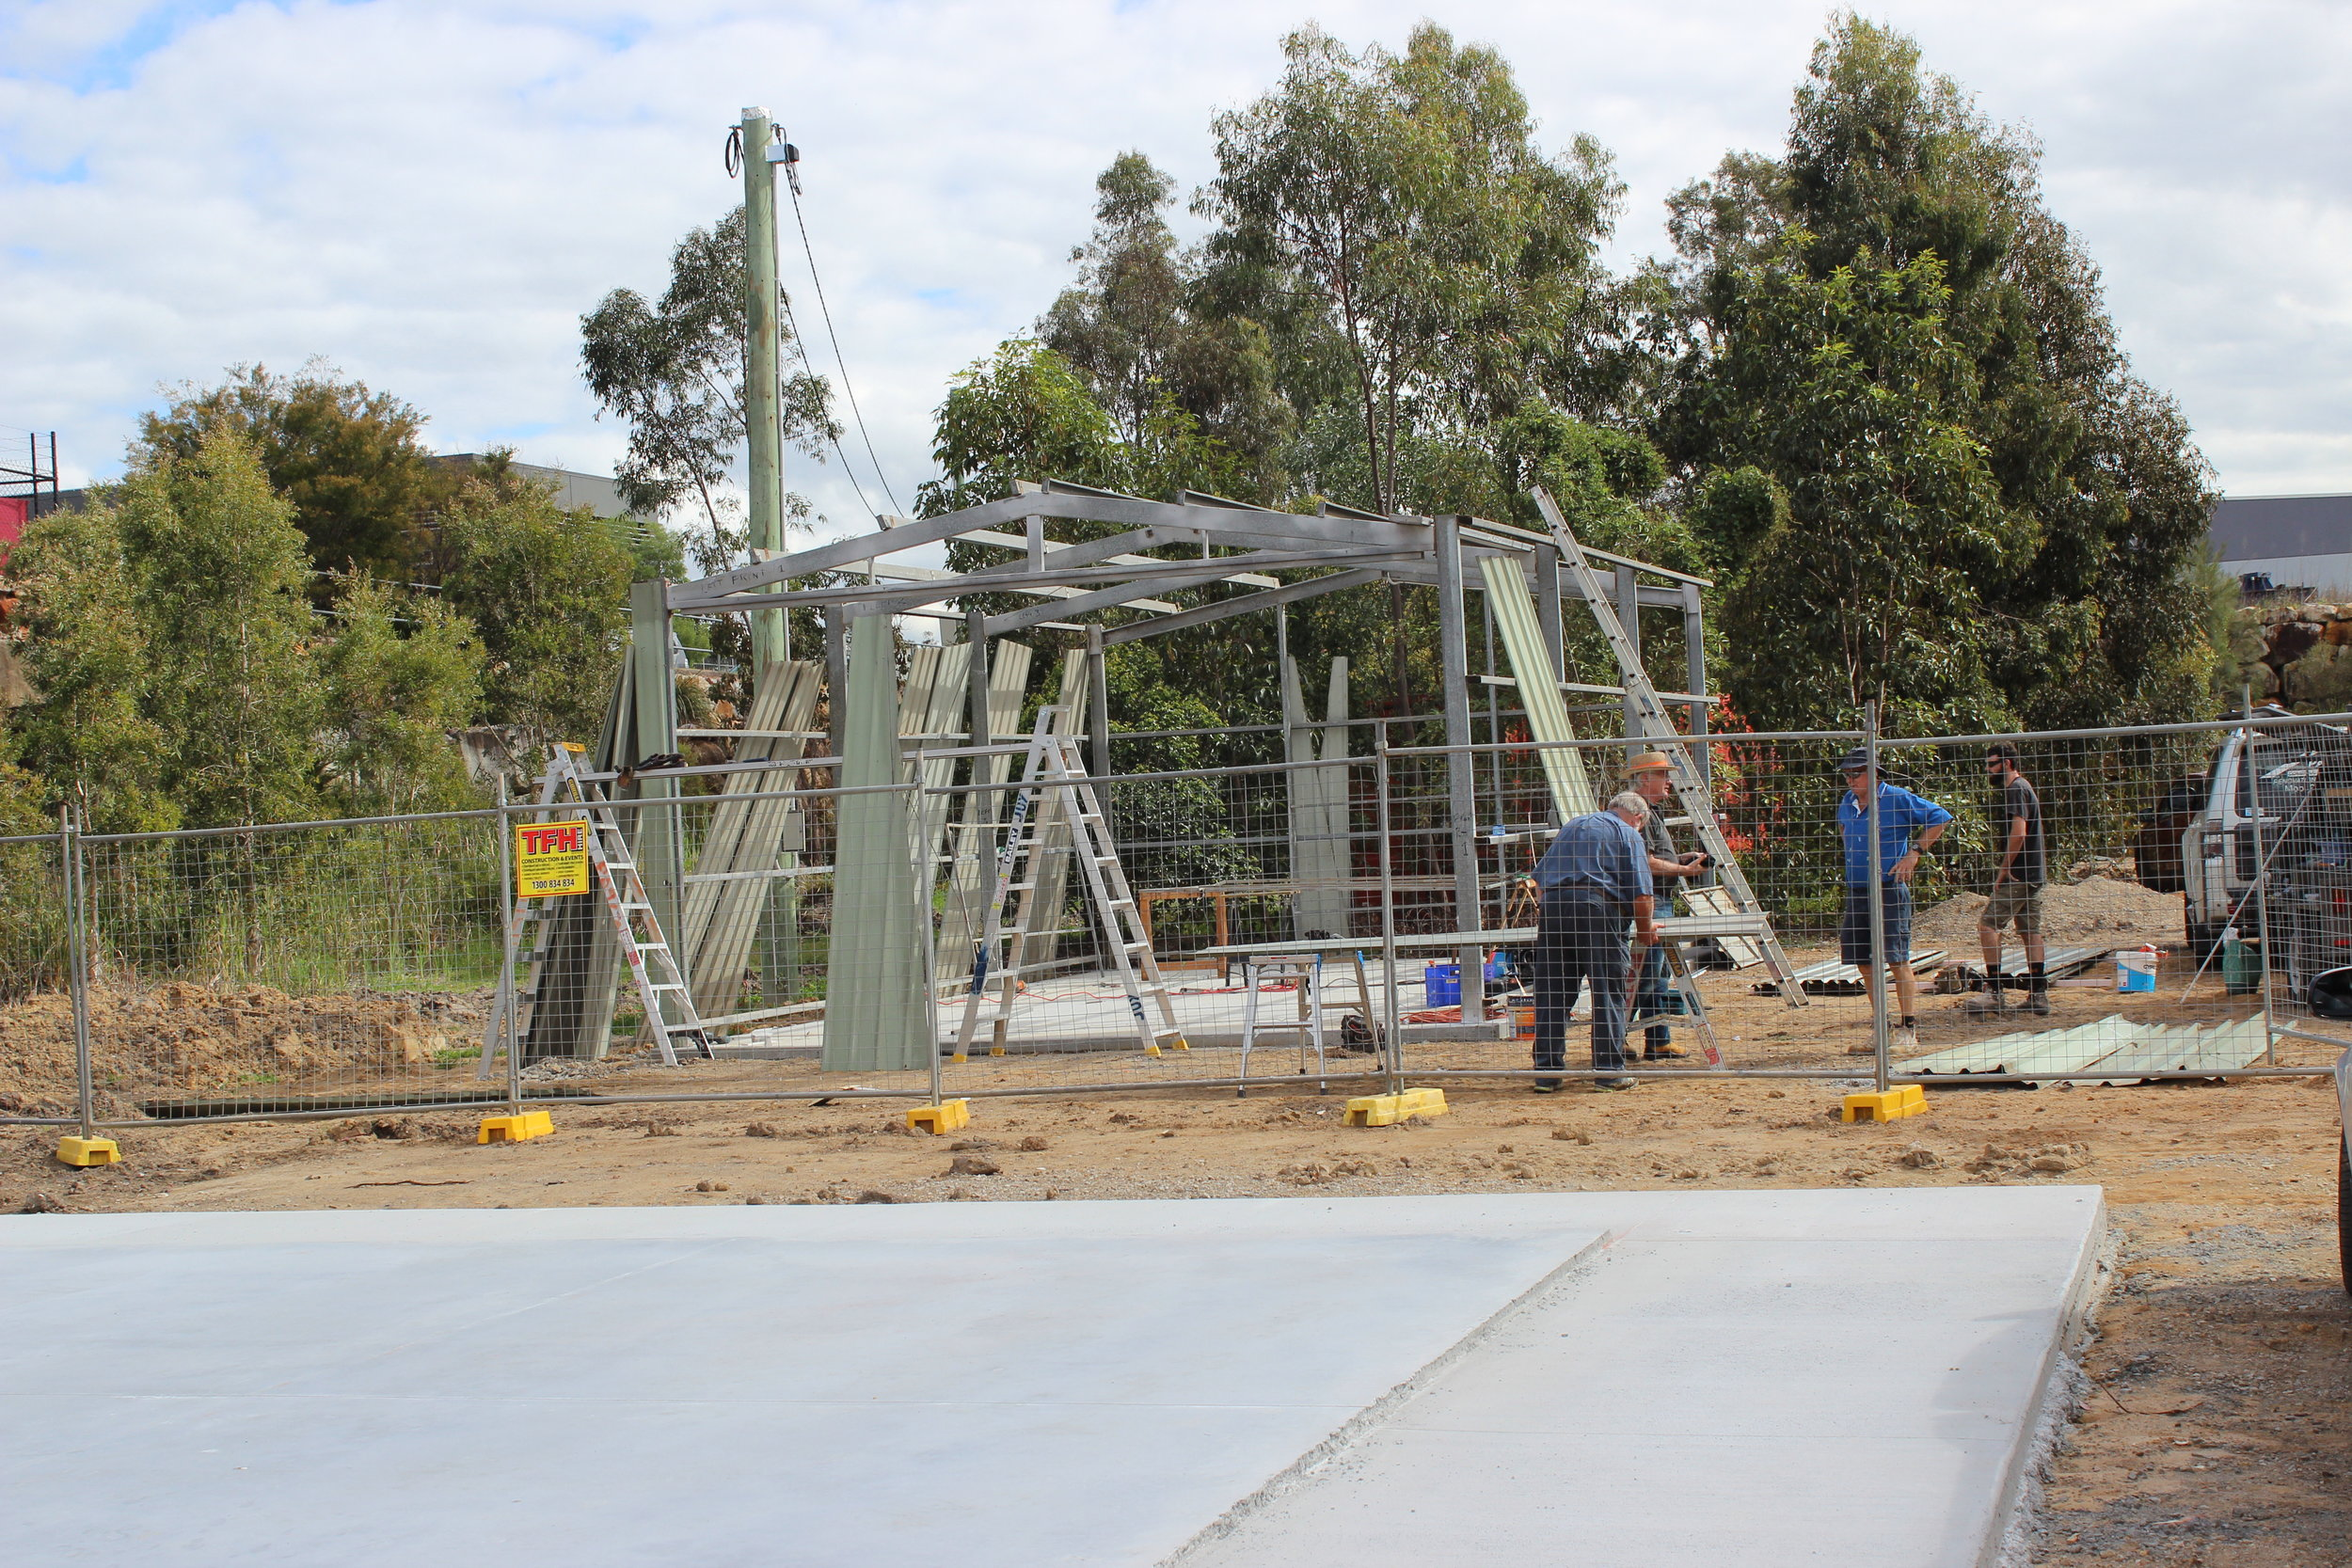 The Oxley shed framework